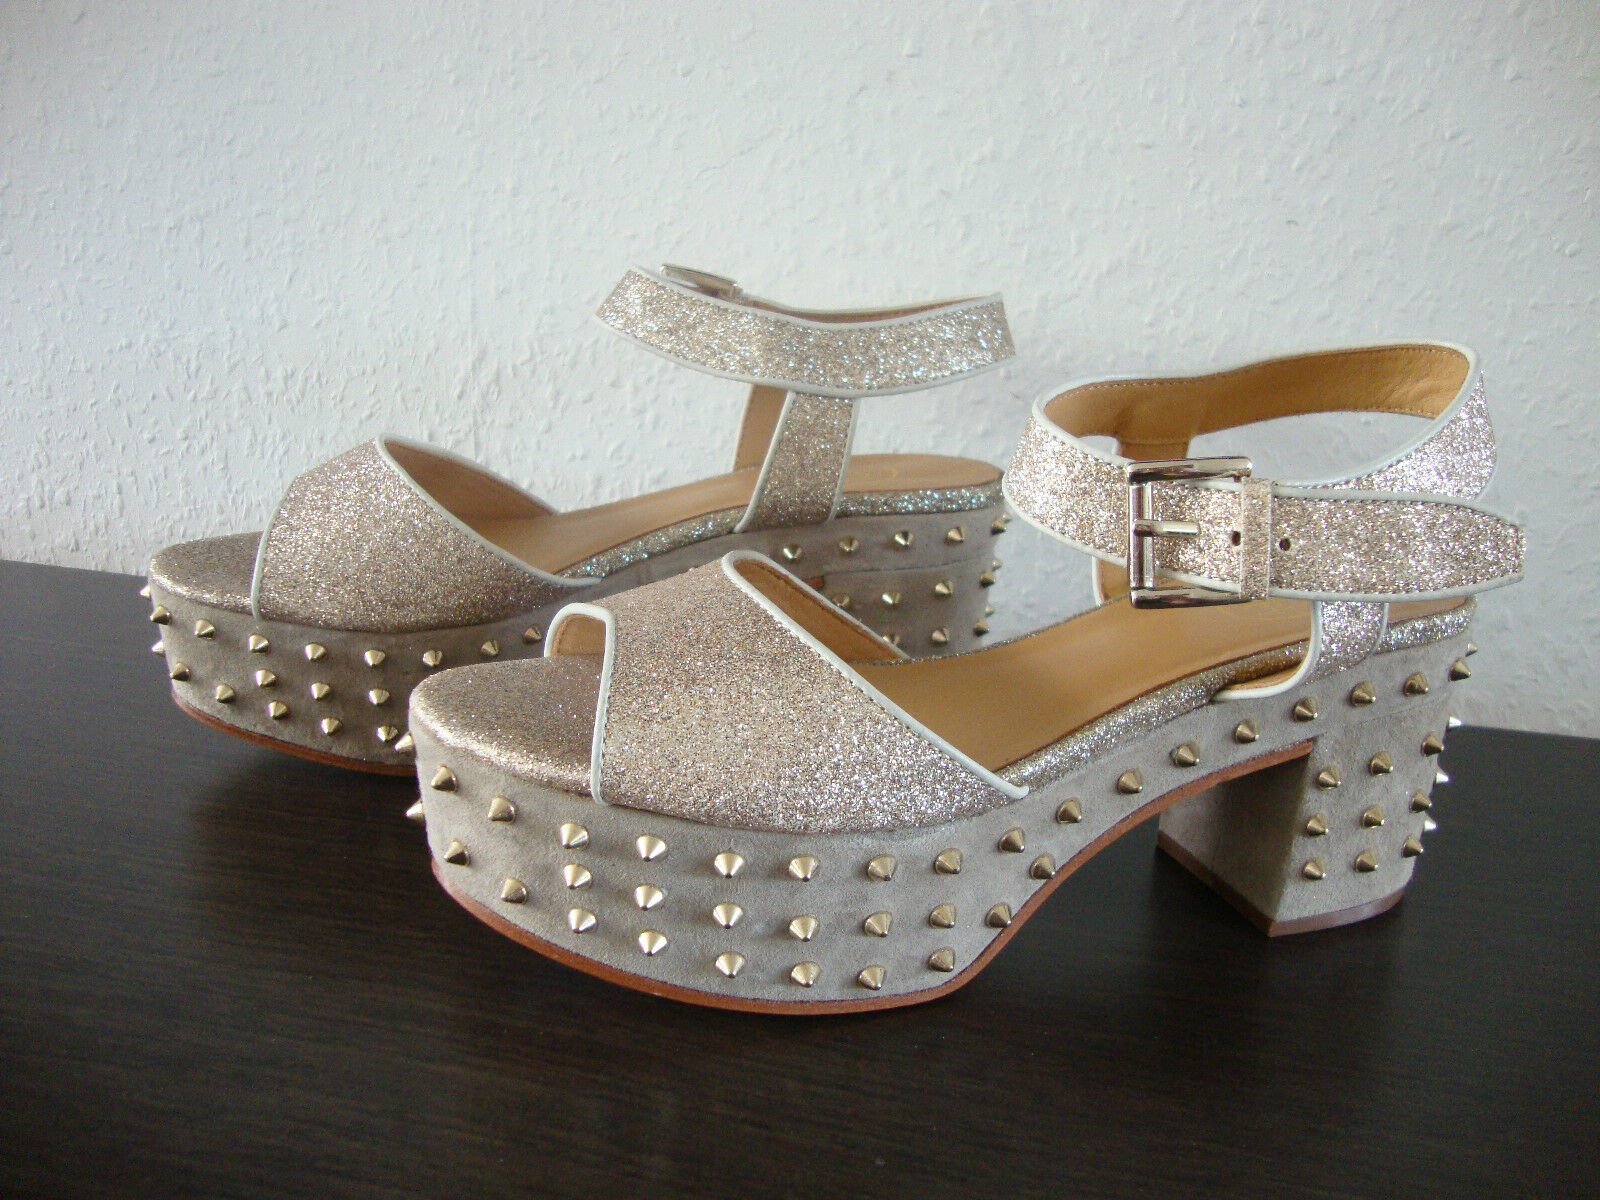 Ash CAPRICE Sandal Leather shoes Womens Sandals Sandals Glitter gold Size 37 NEW